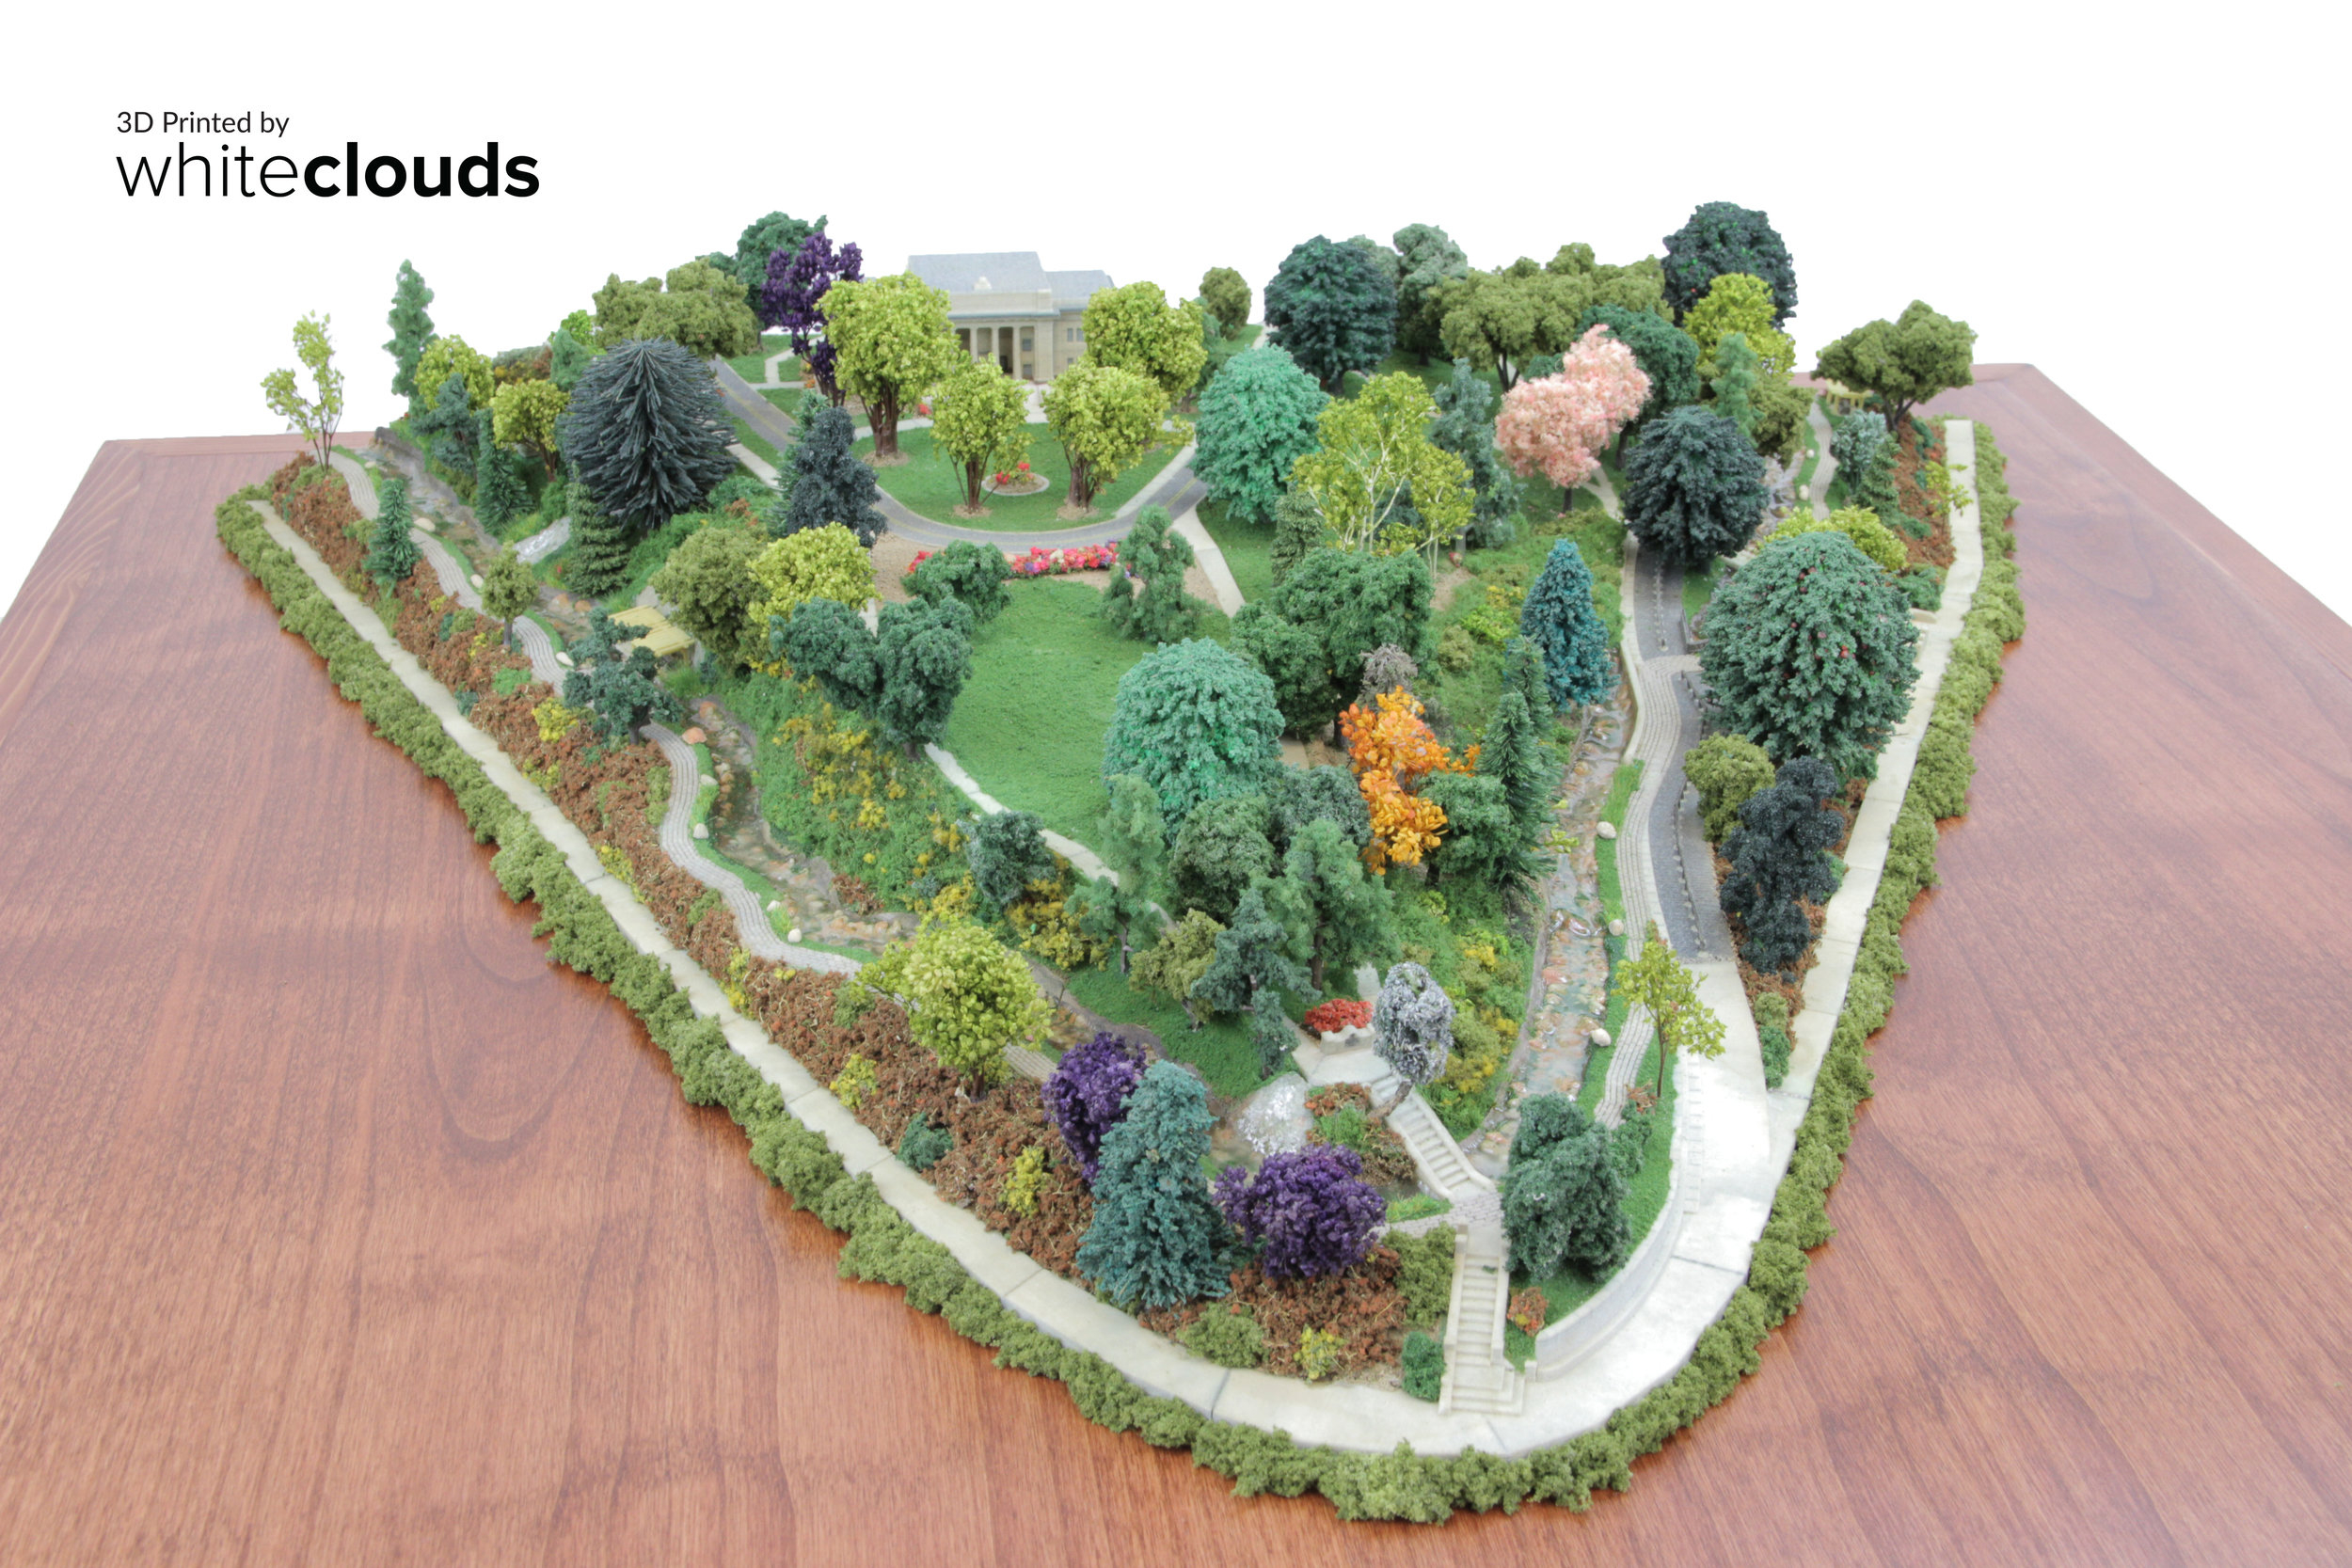 3D-Printed-WhiteCloud-Campus-Architectural-BYU-Sales-Model-1.JPG